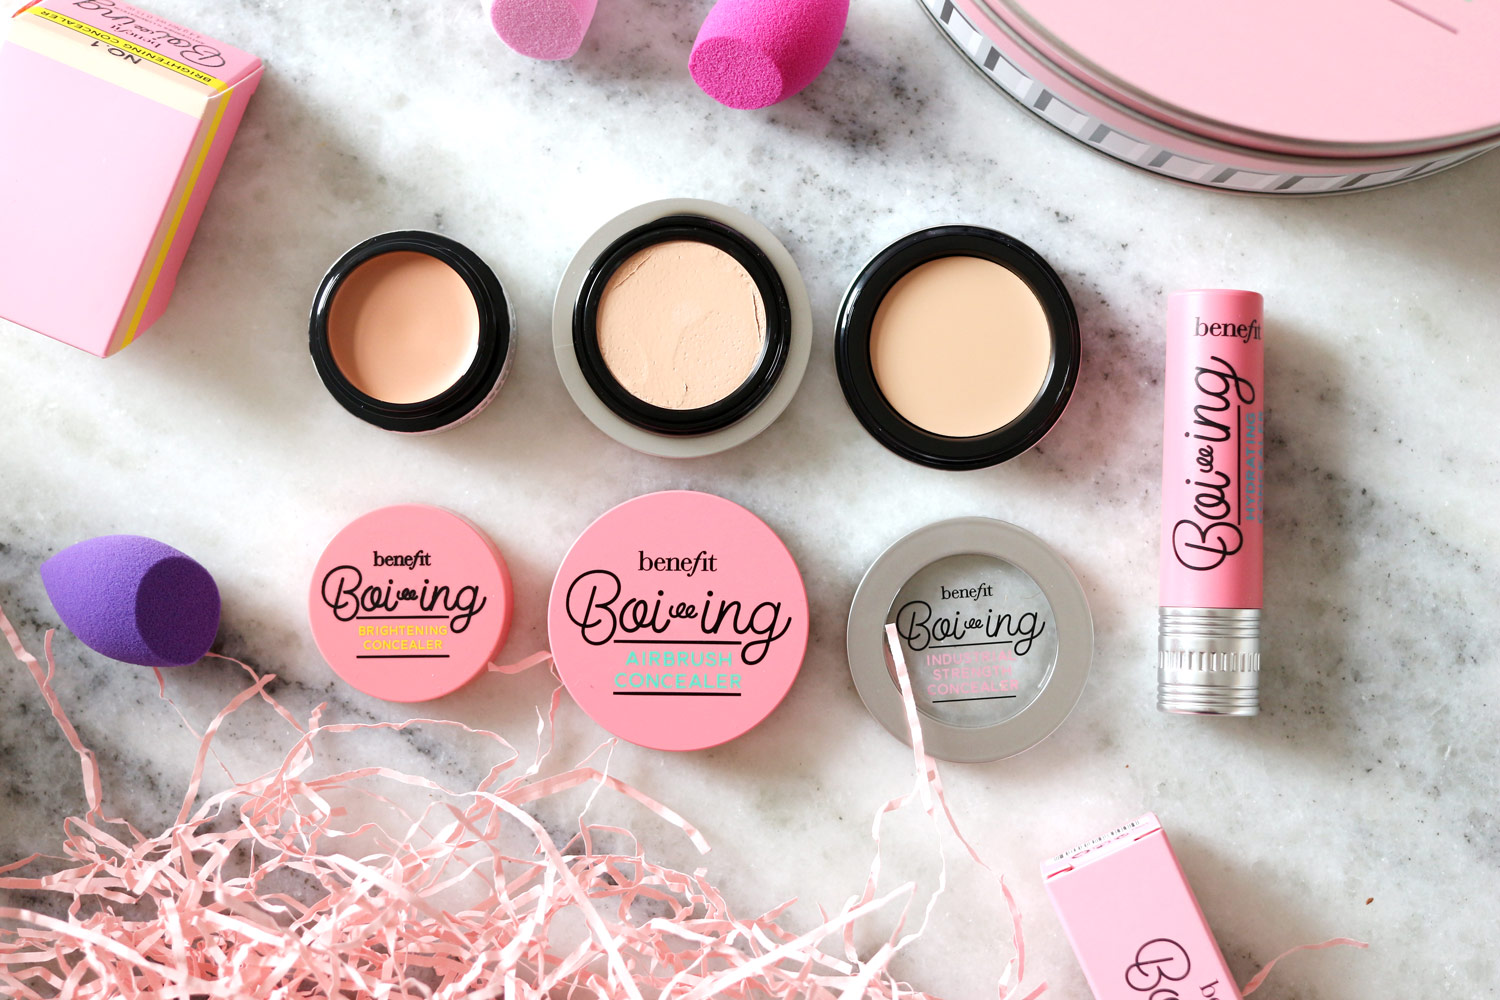 boiing-benefit-airbrush-industrial-strength-concealer-review-hydrating-brightening-1